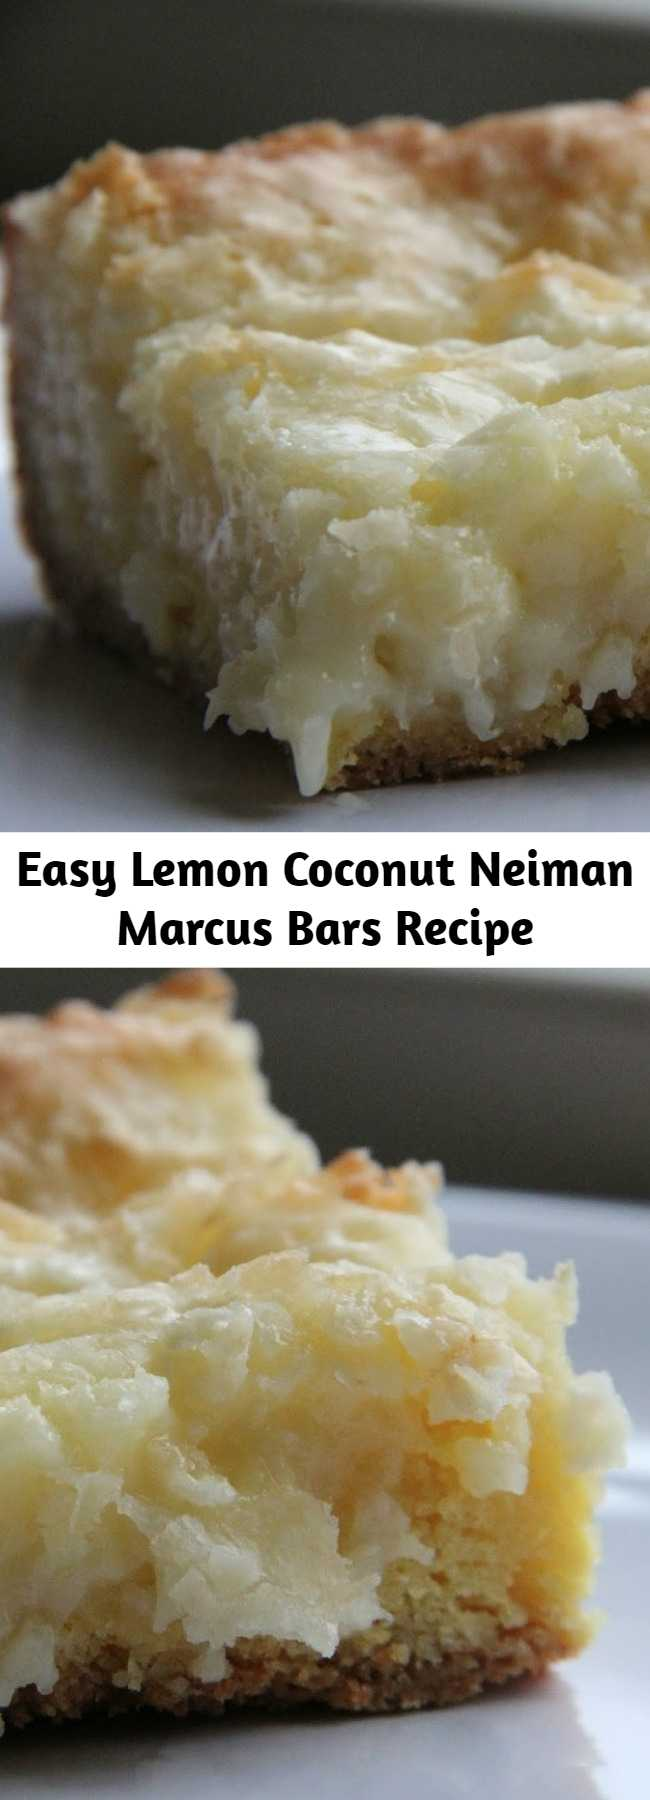 Easy Lemon Coconut Neiman Marcus Bars Recipe - This is it! This is the bar you will make over and over again this spring and summer. Trust me… you'll make it once, everyone will love it and then you'll keep making it for every occasion between now and Labor Day. This is your new favorite bar :).